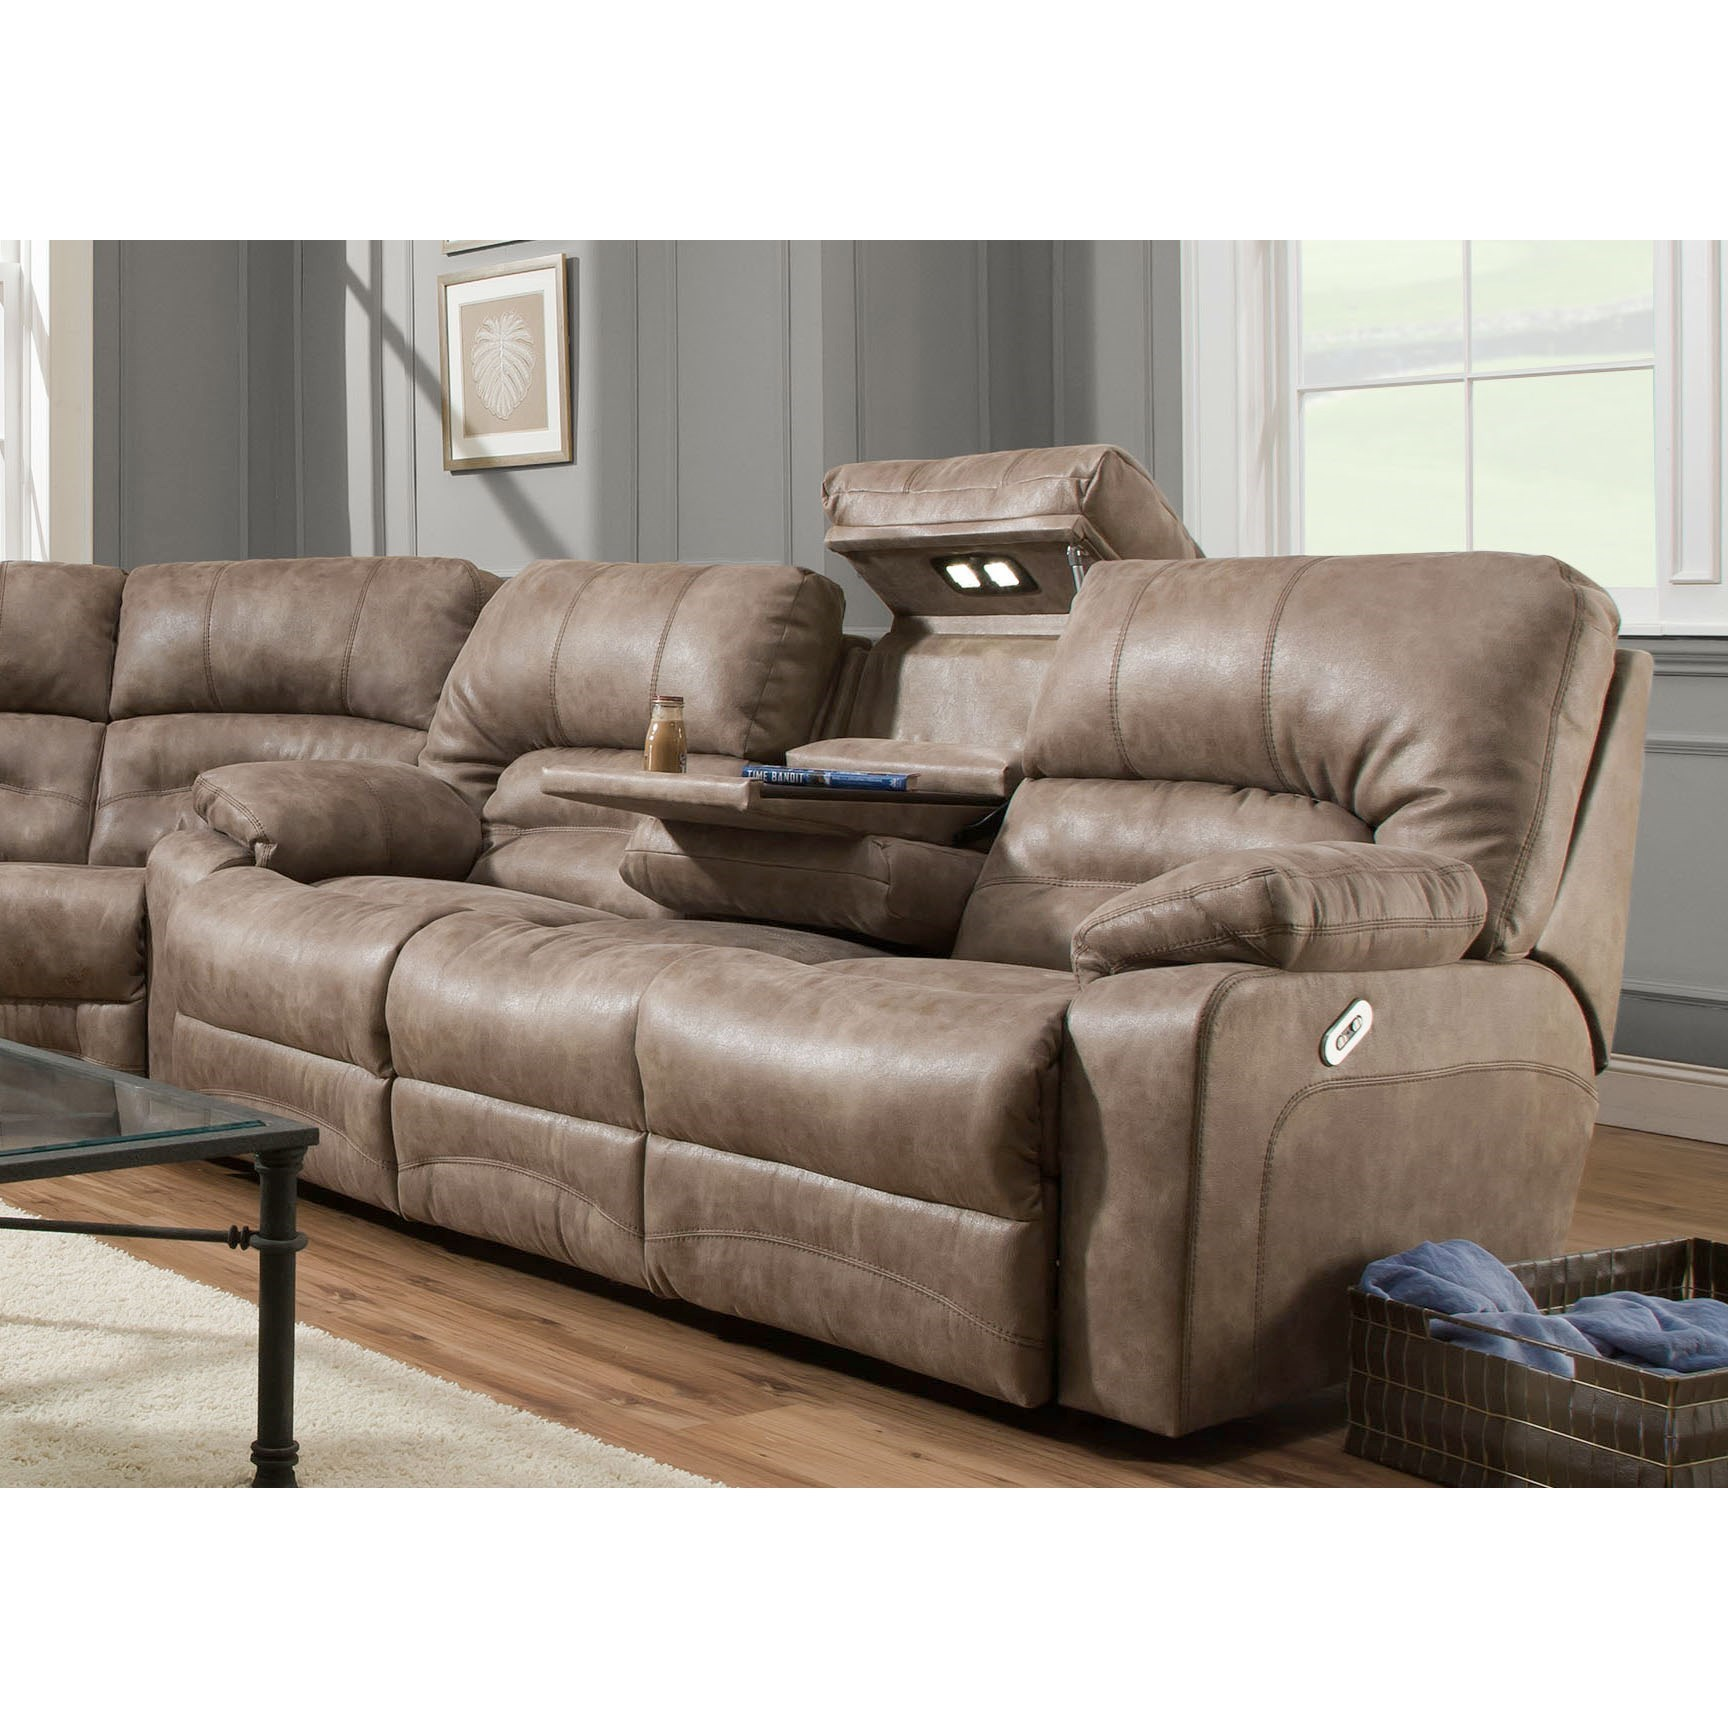 Legacy Reclining Sofa with Table and Lights by Franklin at Catalog Outlet